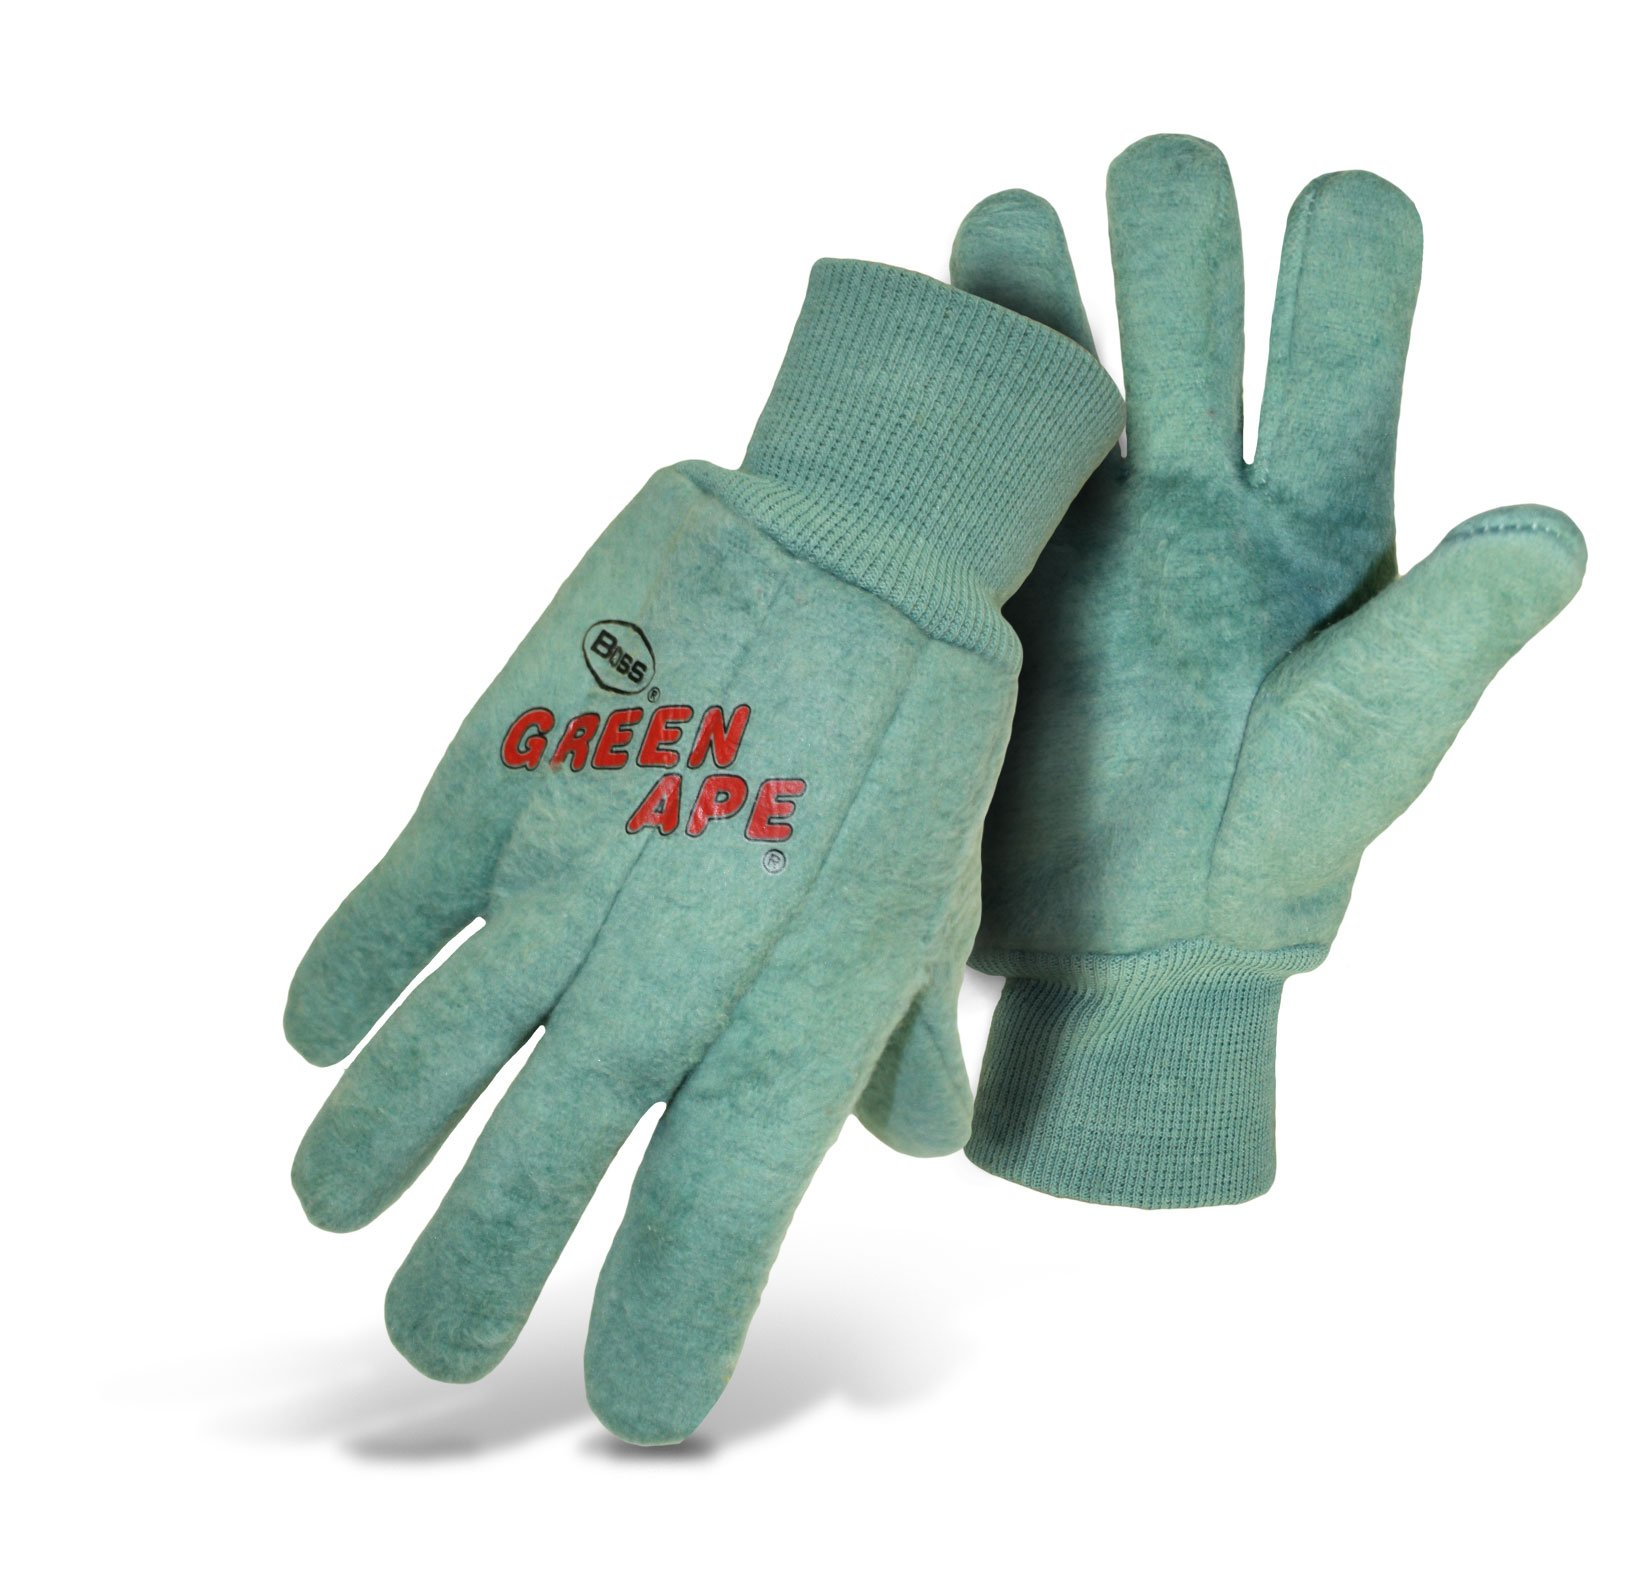 Boss Guard 313 Green Ape Chore Cotton Work Gloves, Large (Case of 72 Pairs)